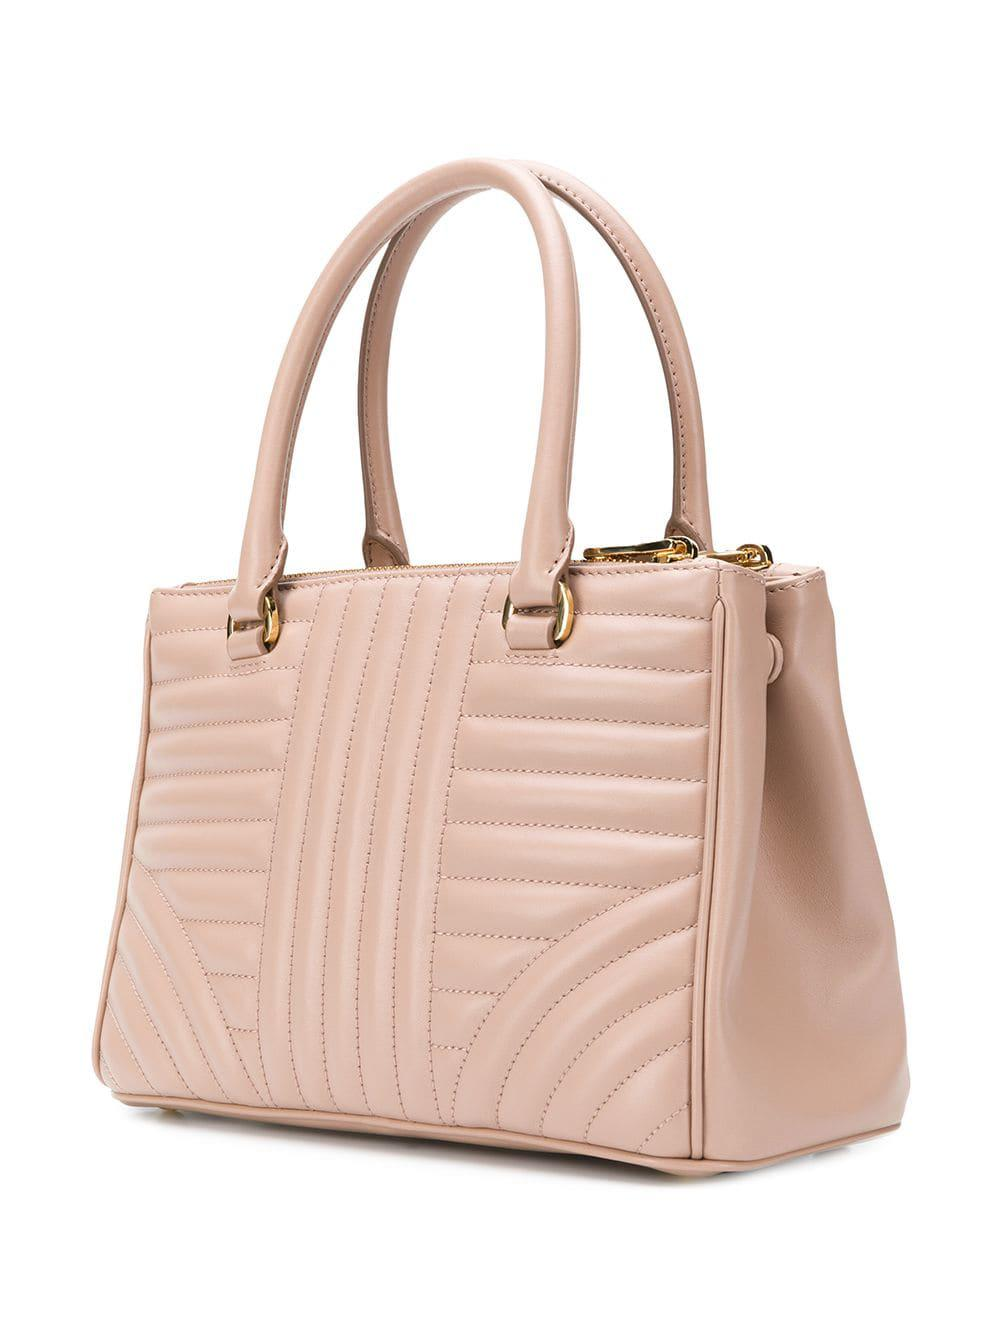 Prada Leather Quilted Logo Tote Bag in Pink